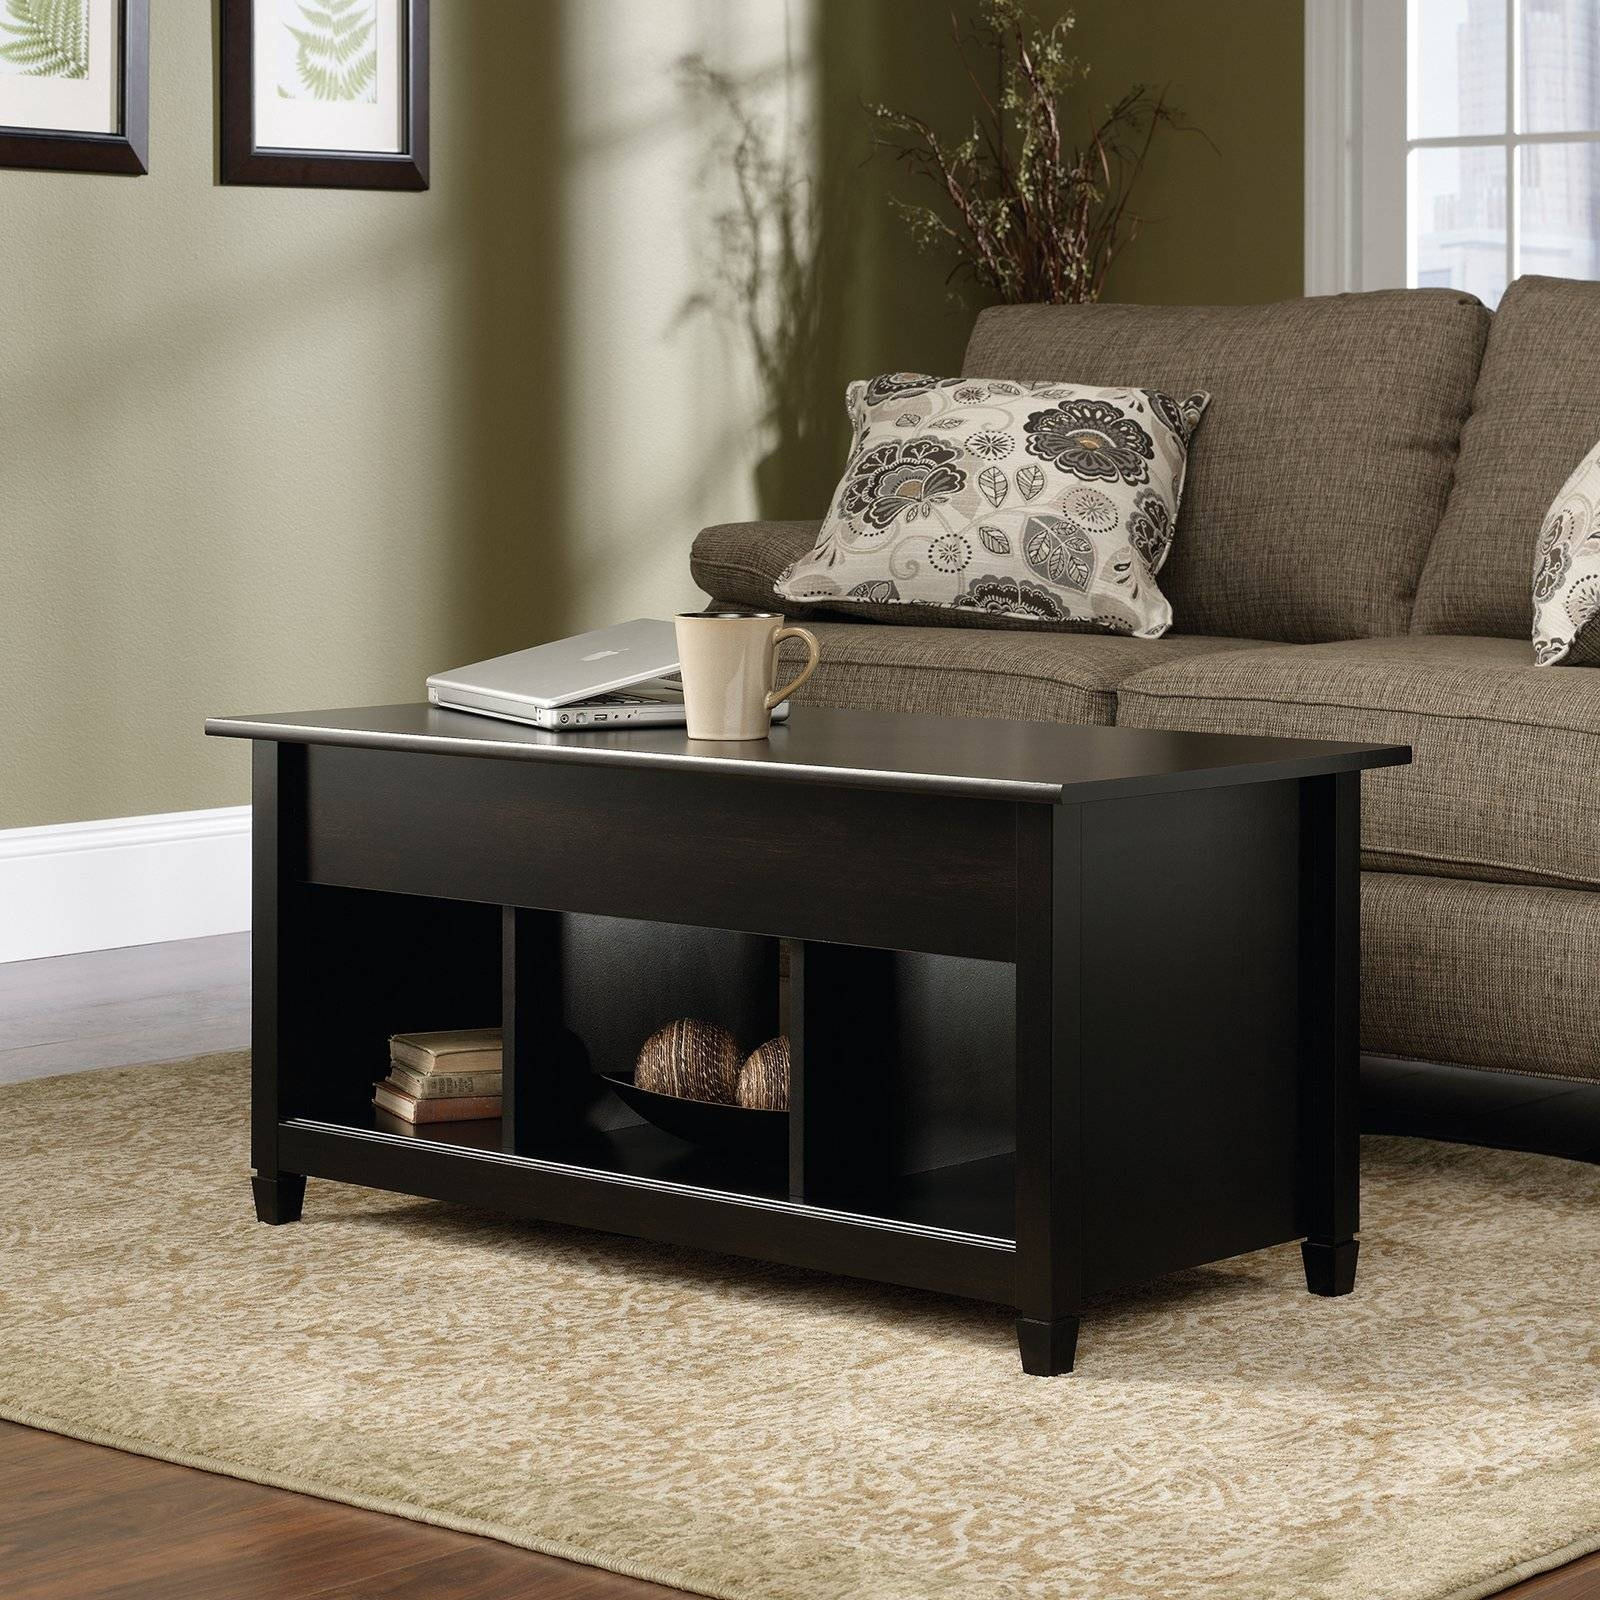 Turner Lift Top Coffee Table – Espresso | Hayneedle Pertaining To Lift Top Coffee Tables With Storage (View 22 of 30)